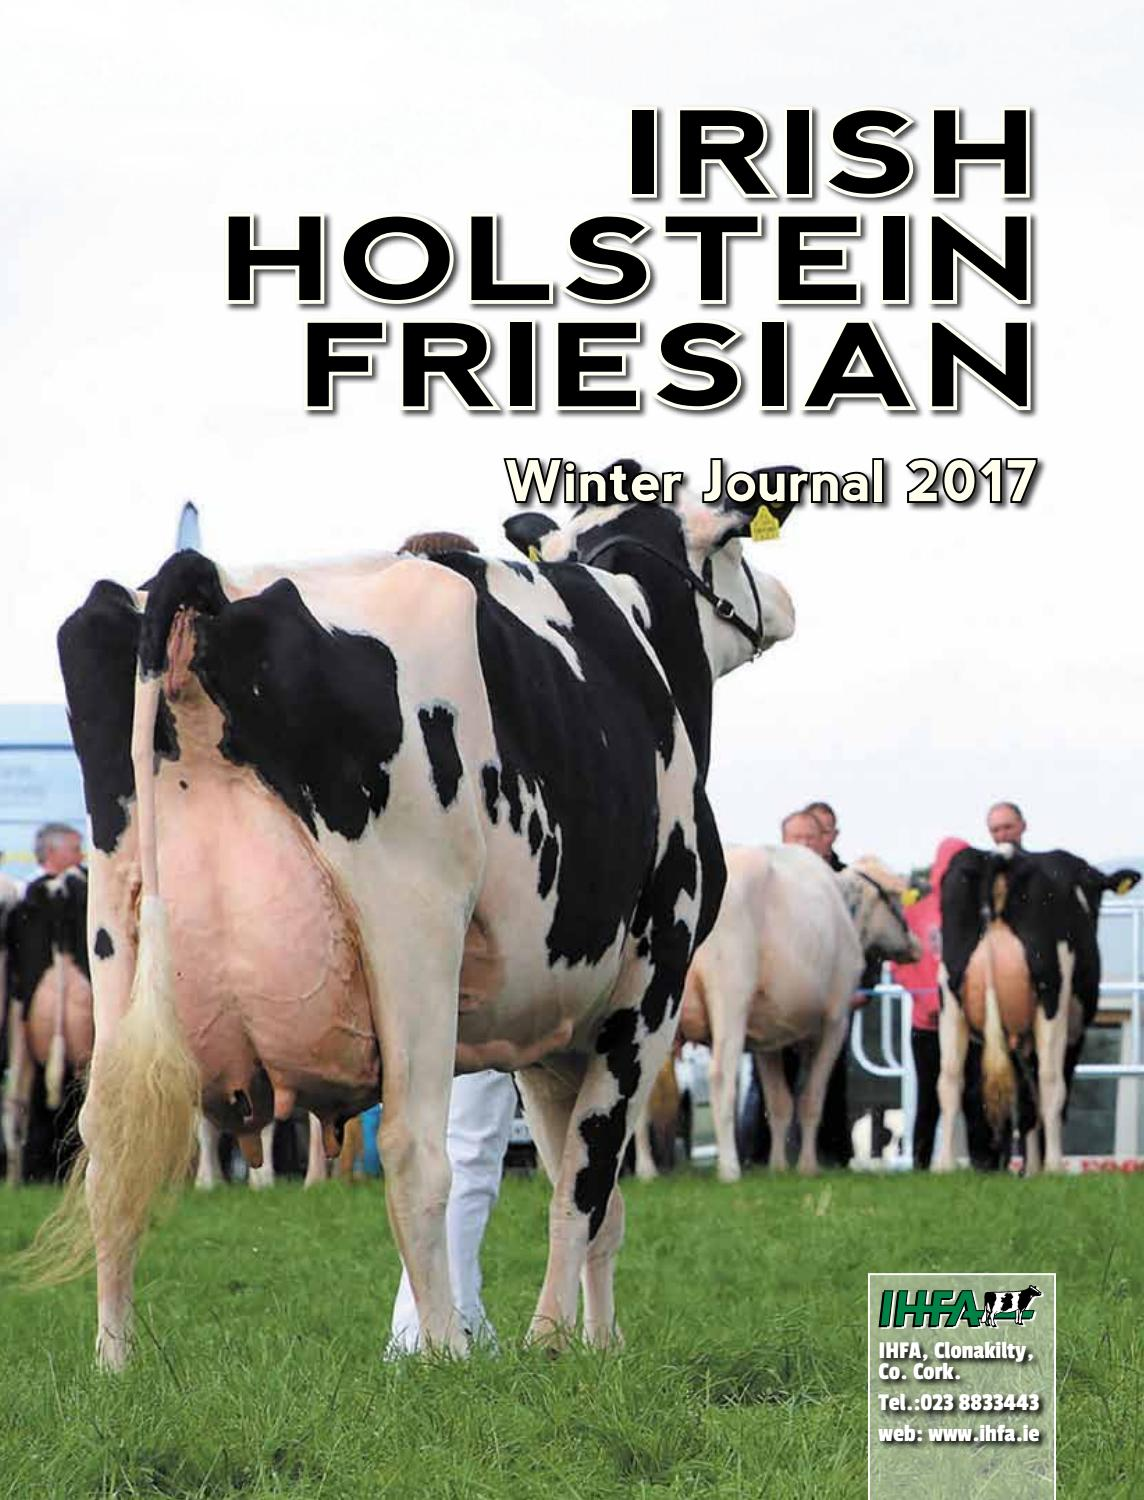 And the Holstein cow will treat us with milk